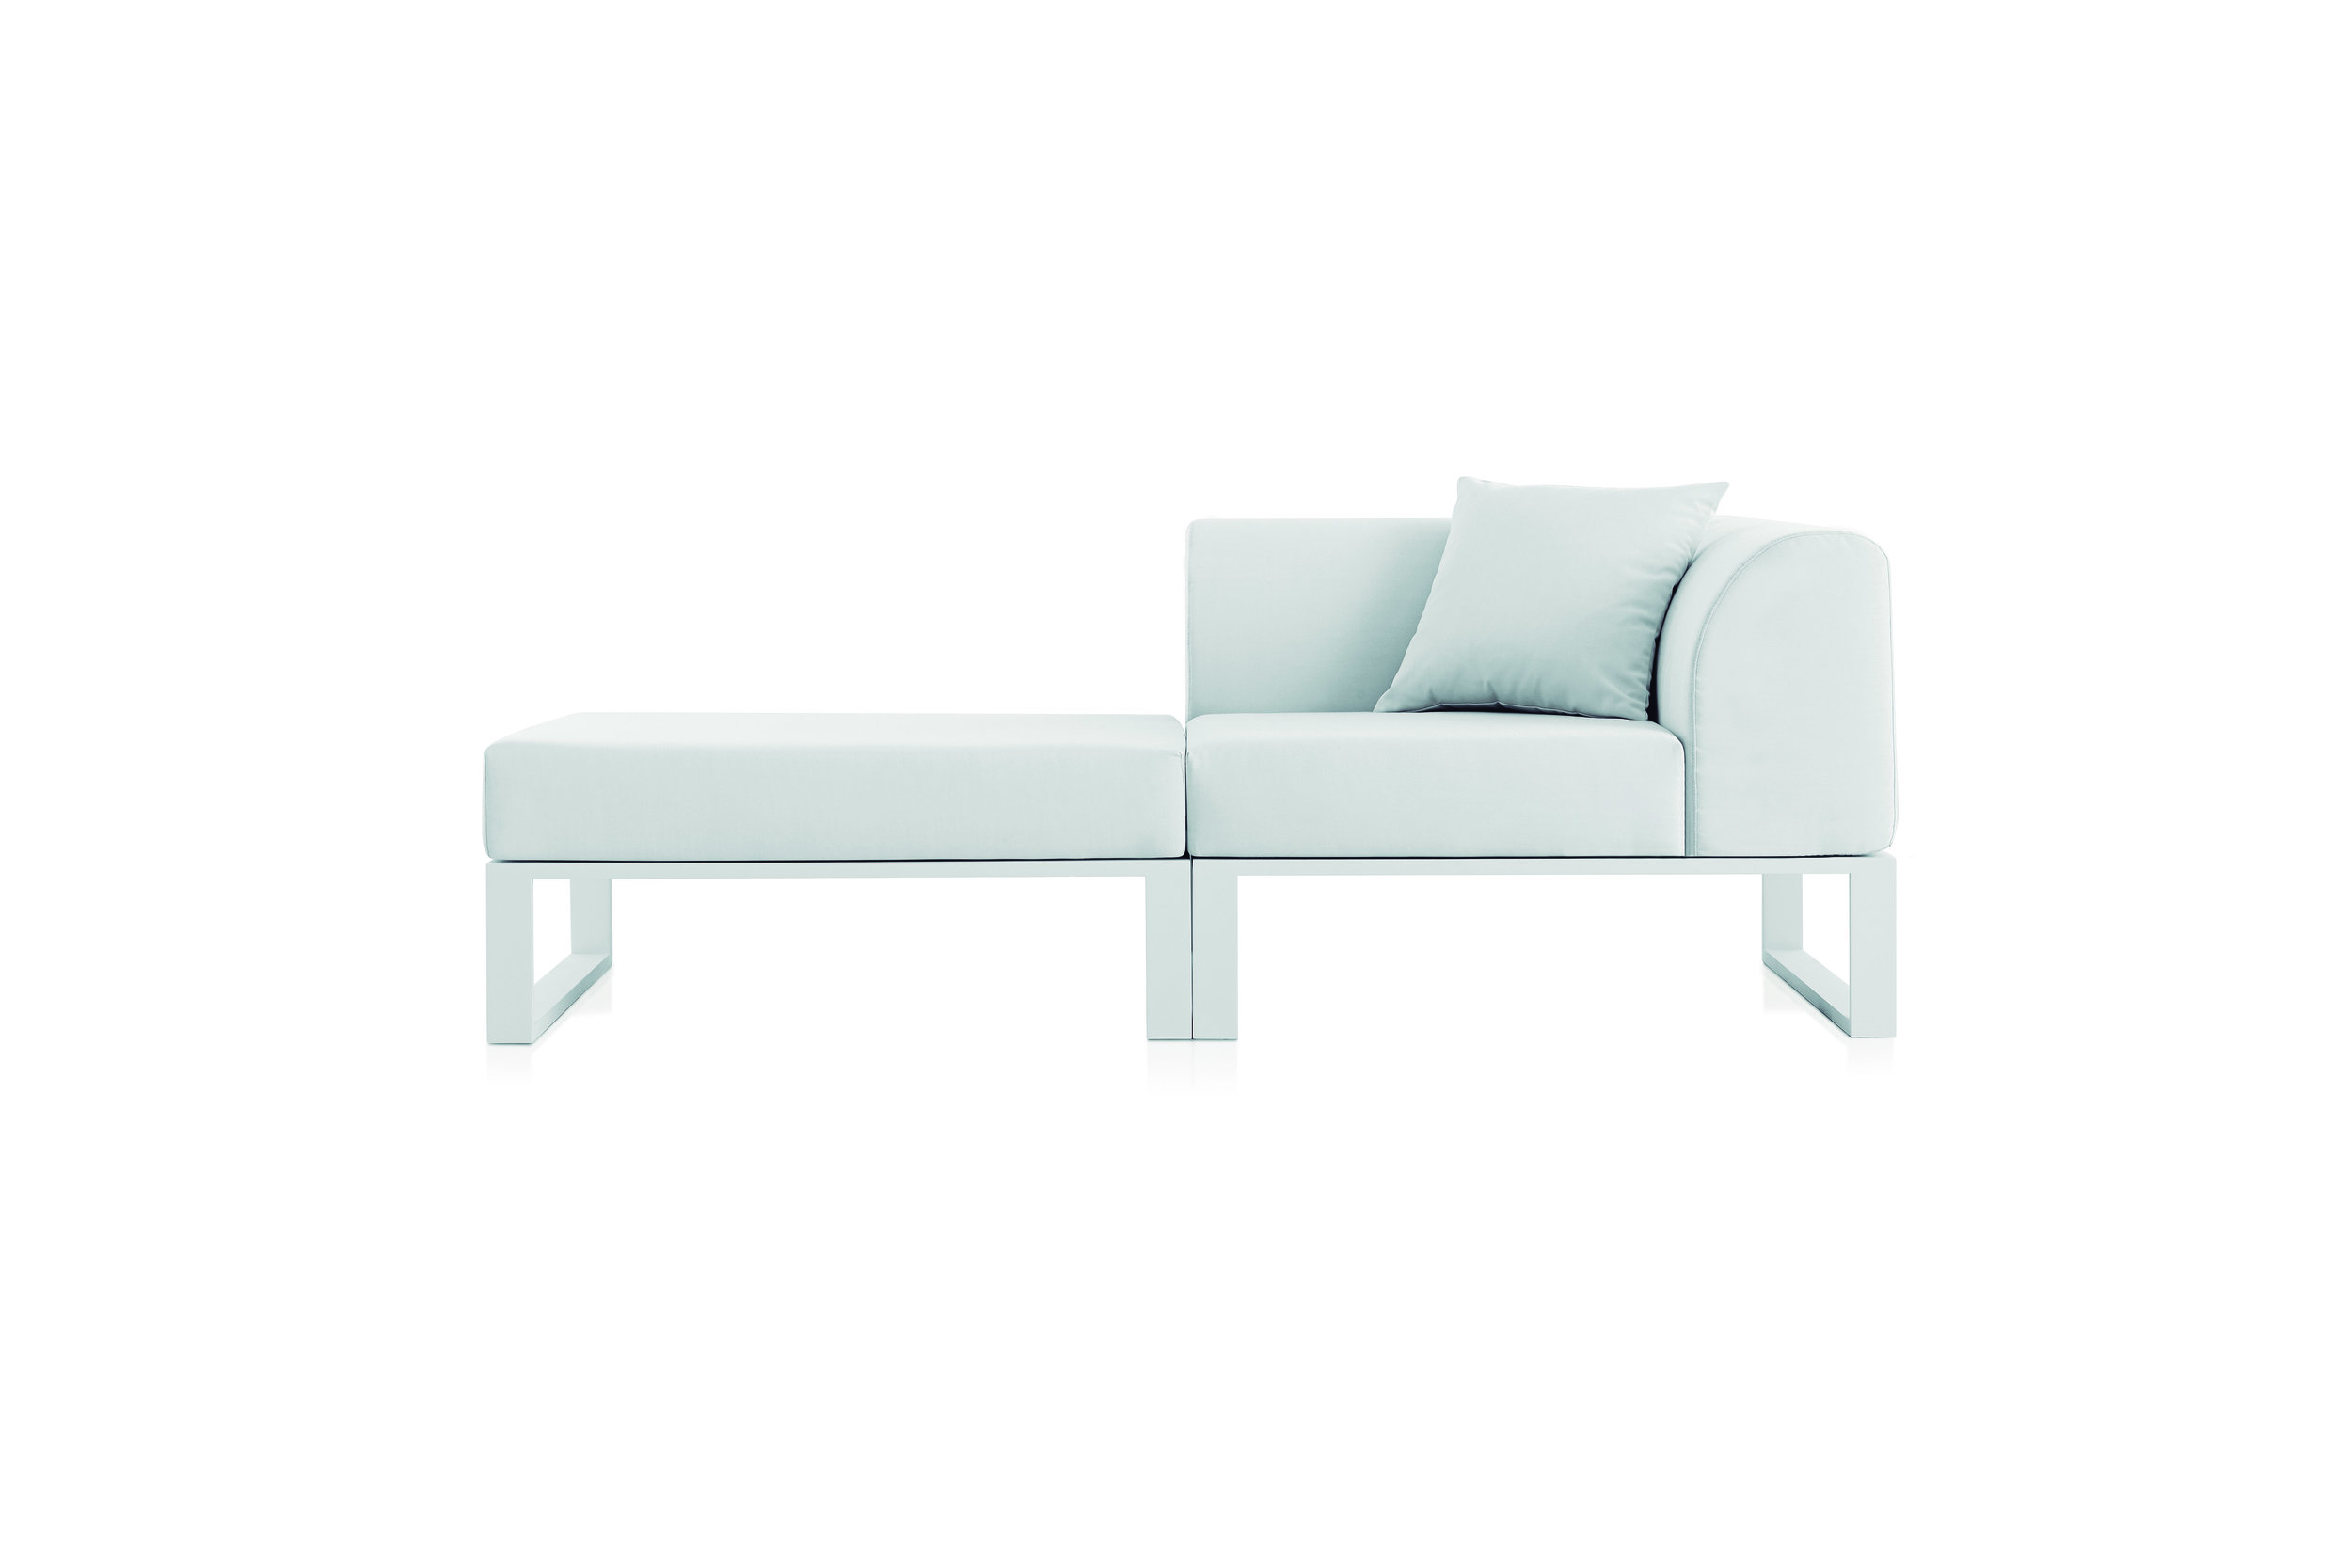 Ploid sofa modular lounger white.jpg